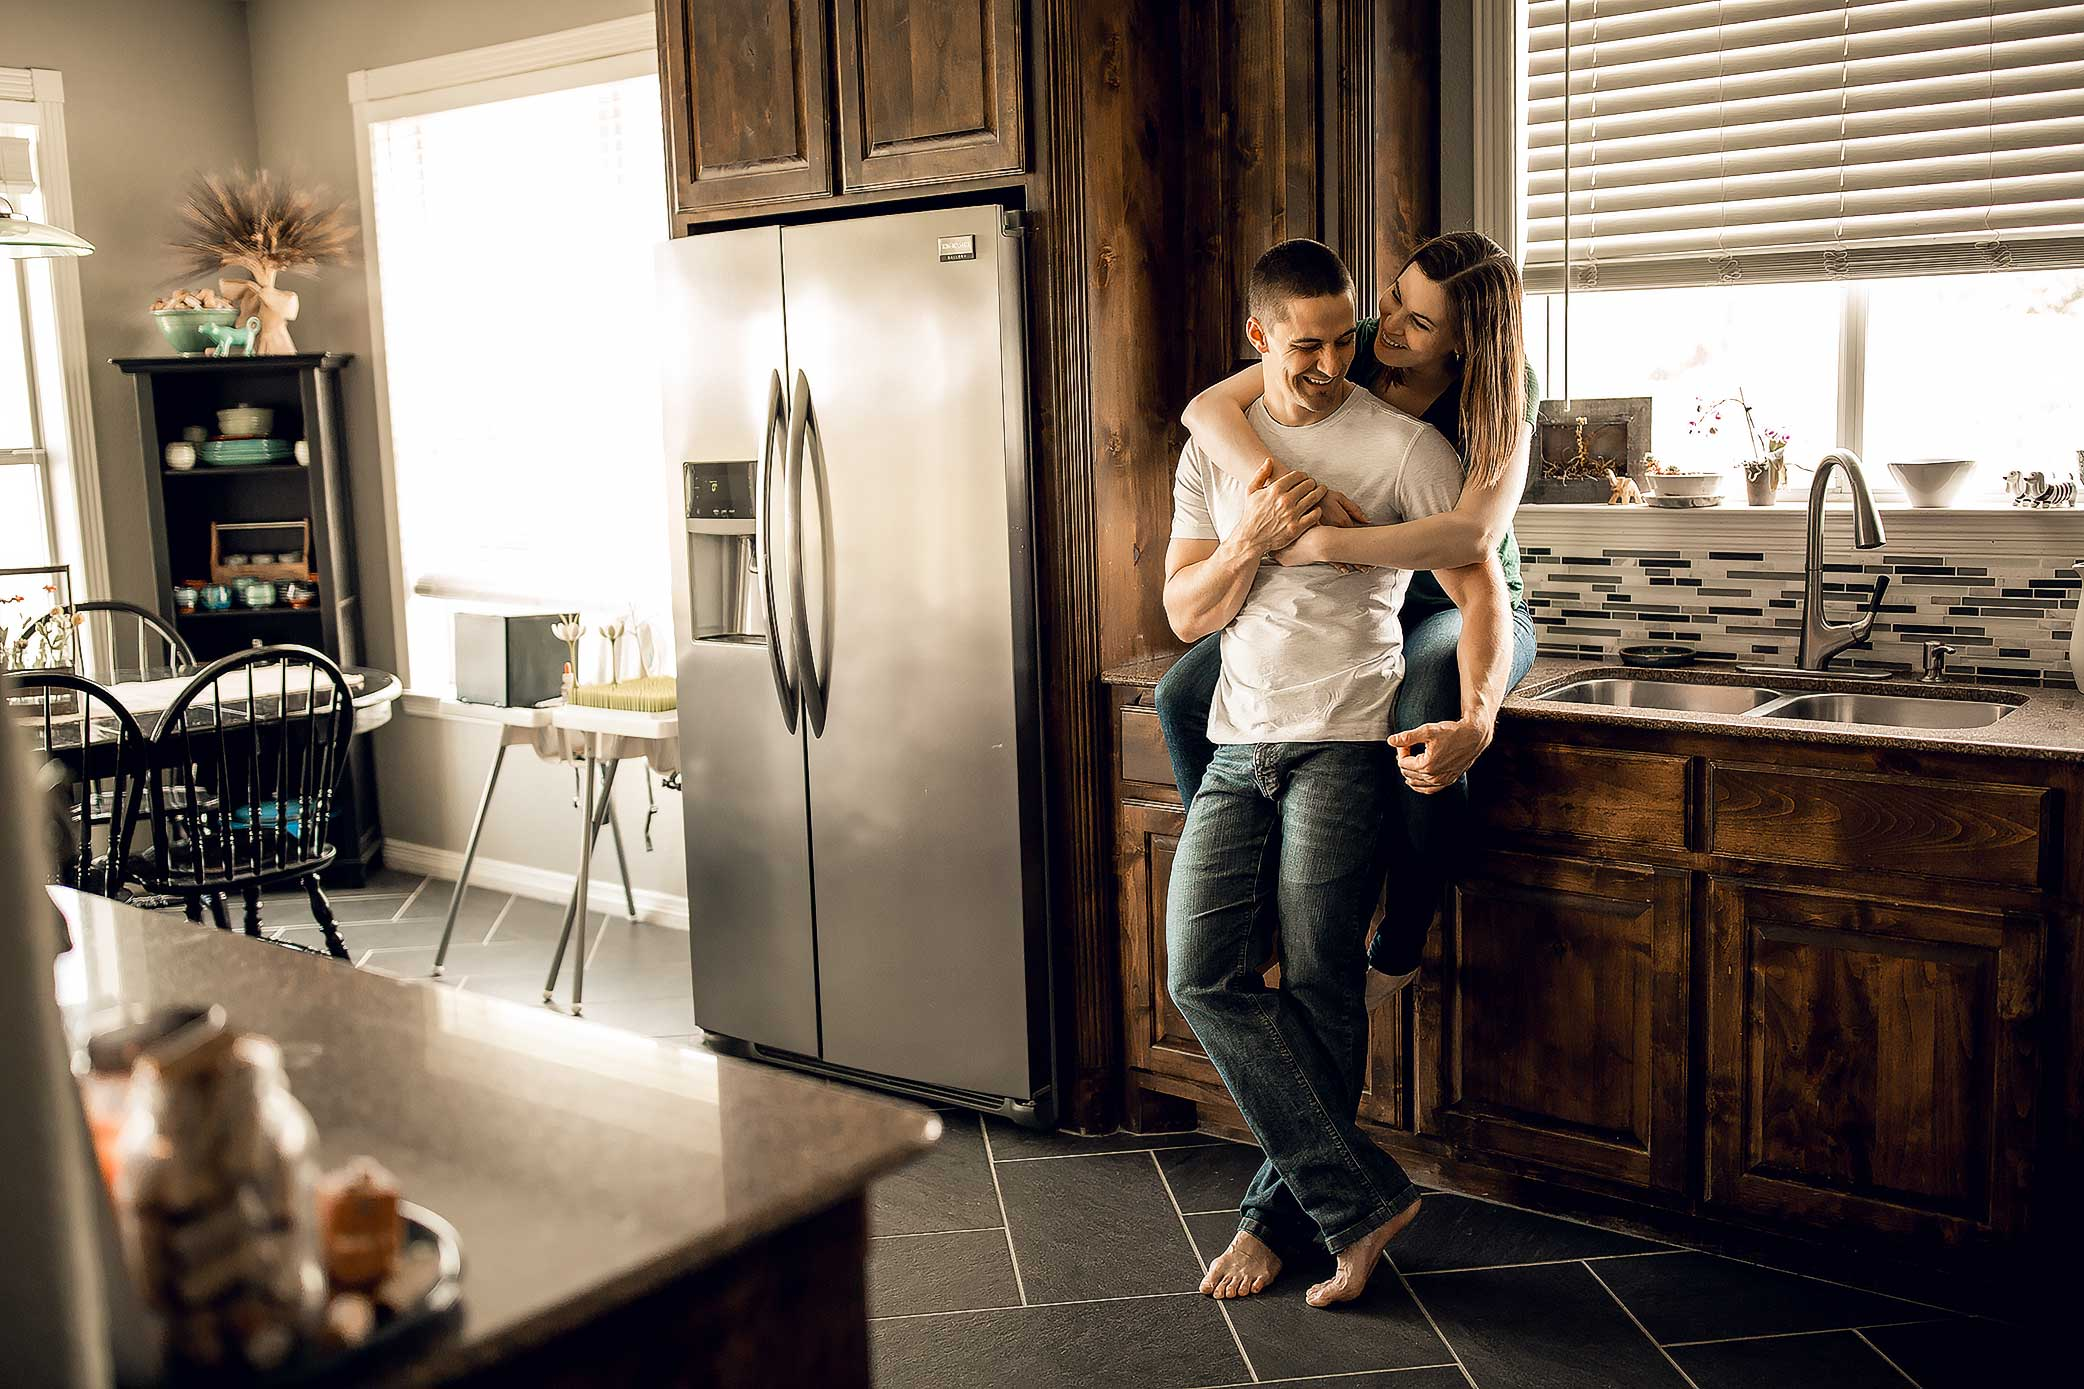 shelby-schiller-photography-lifestyle-home-couples-session-south-college-station-15.jpg